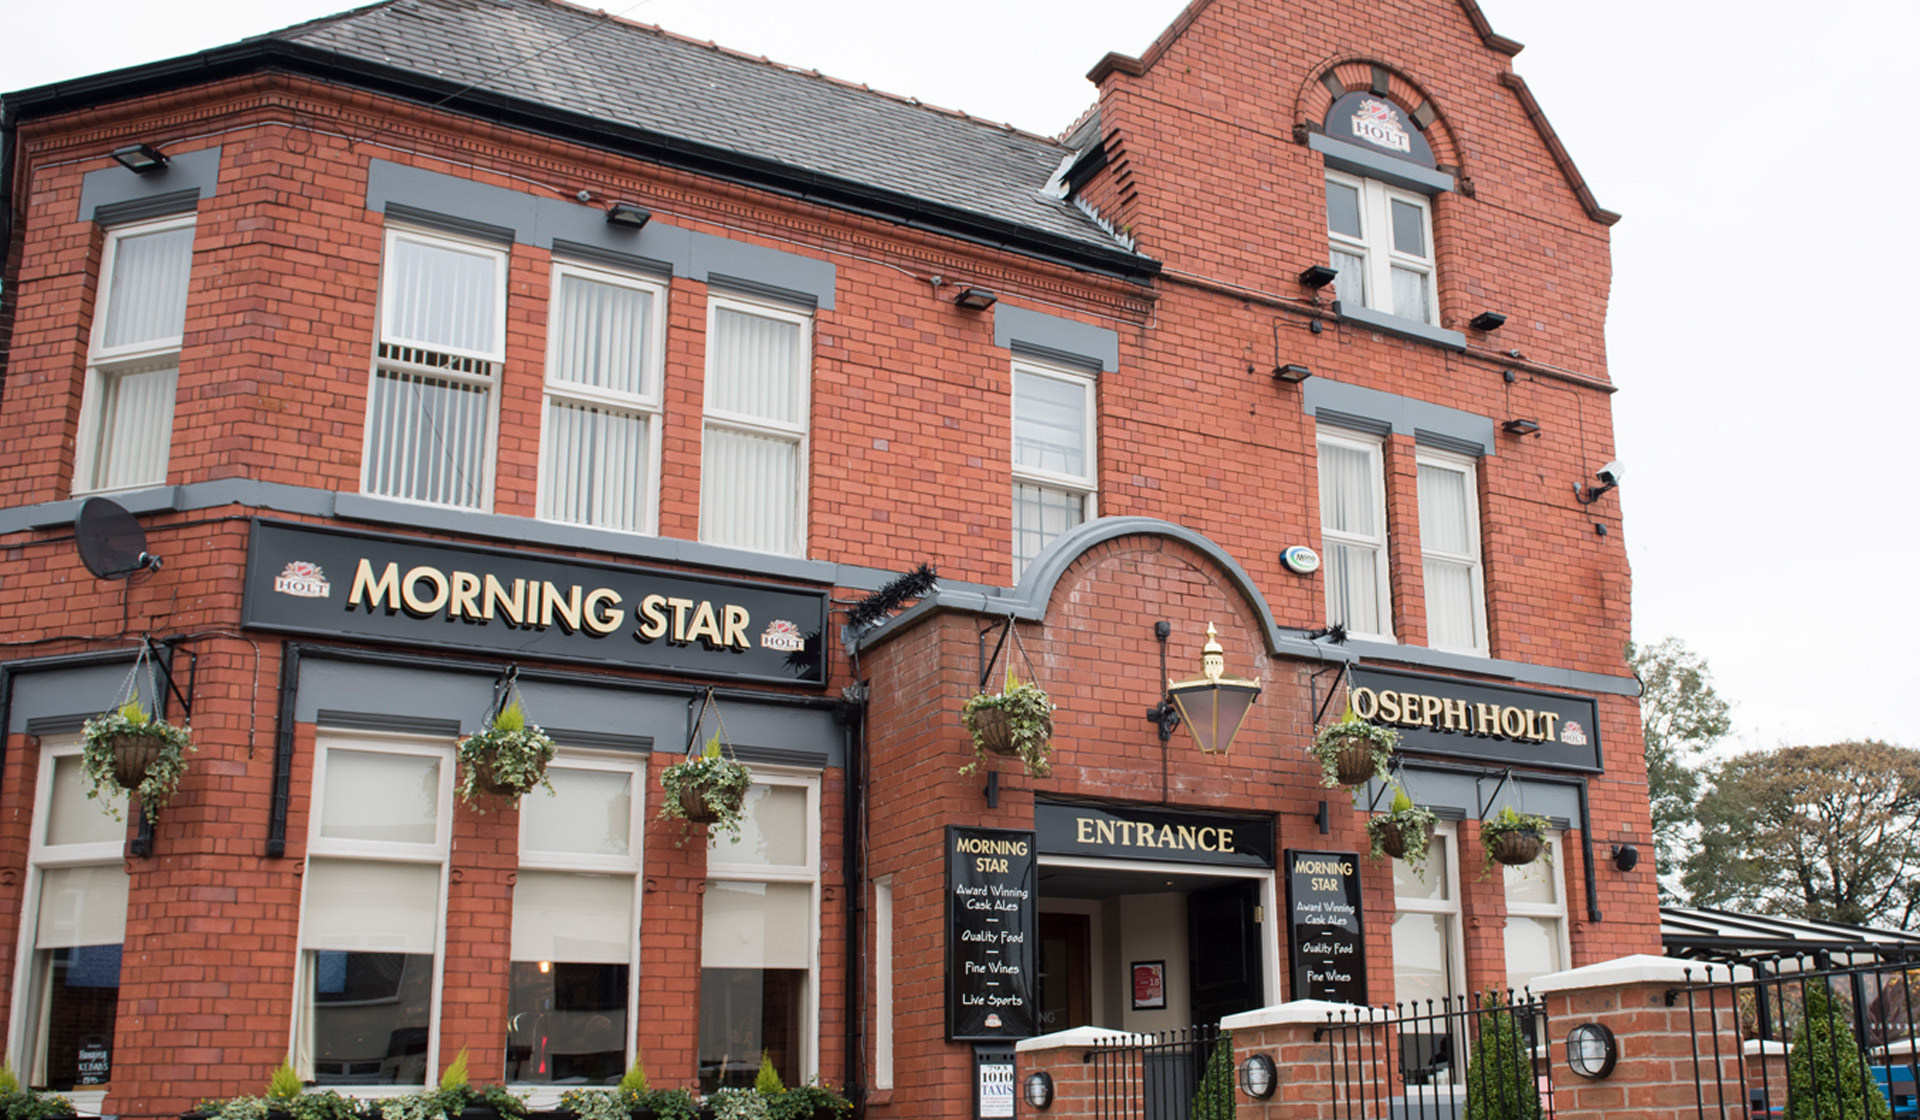 morning star pub in wardley swinton